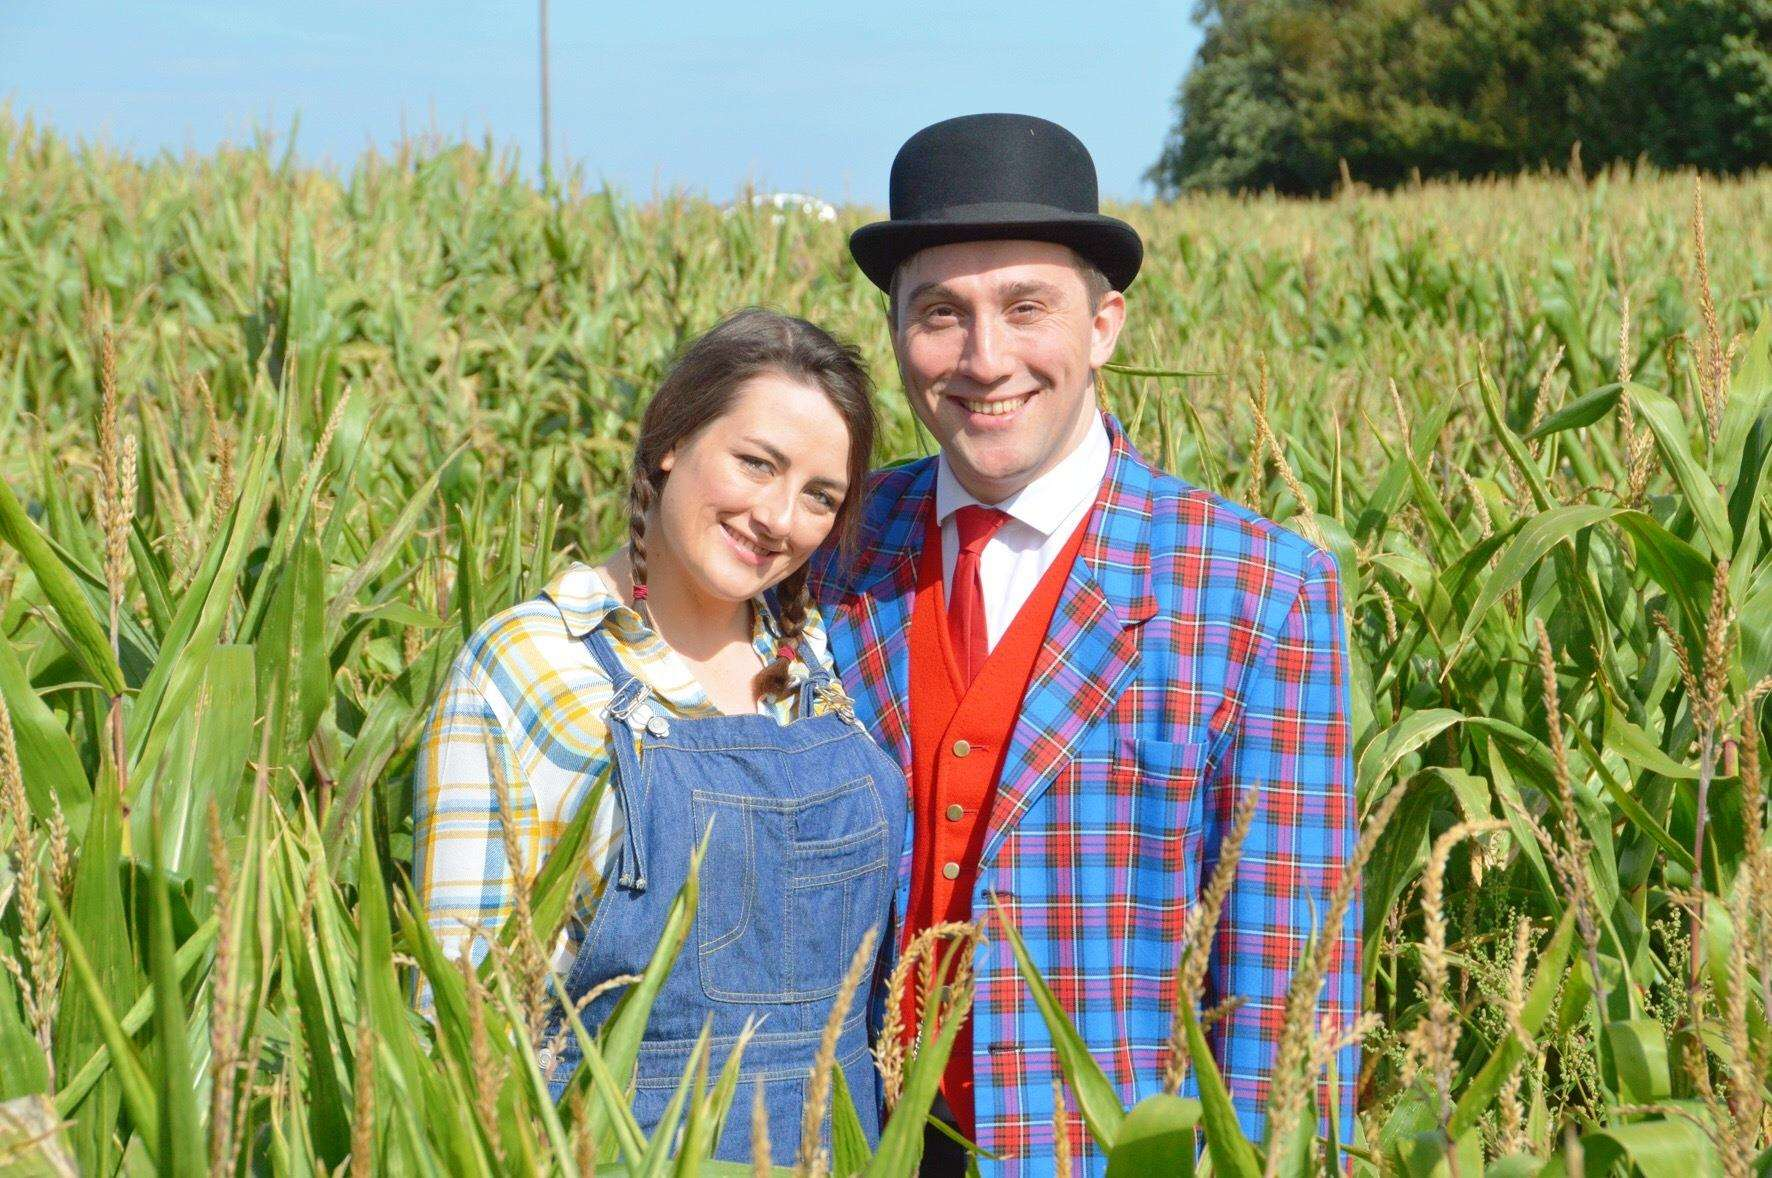 Ellie and Chris Hiam of the King's Lynn Players are to star in the group's new production of Oklahoma! at the King's Lynn Arts Centre soon. (4702735)